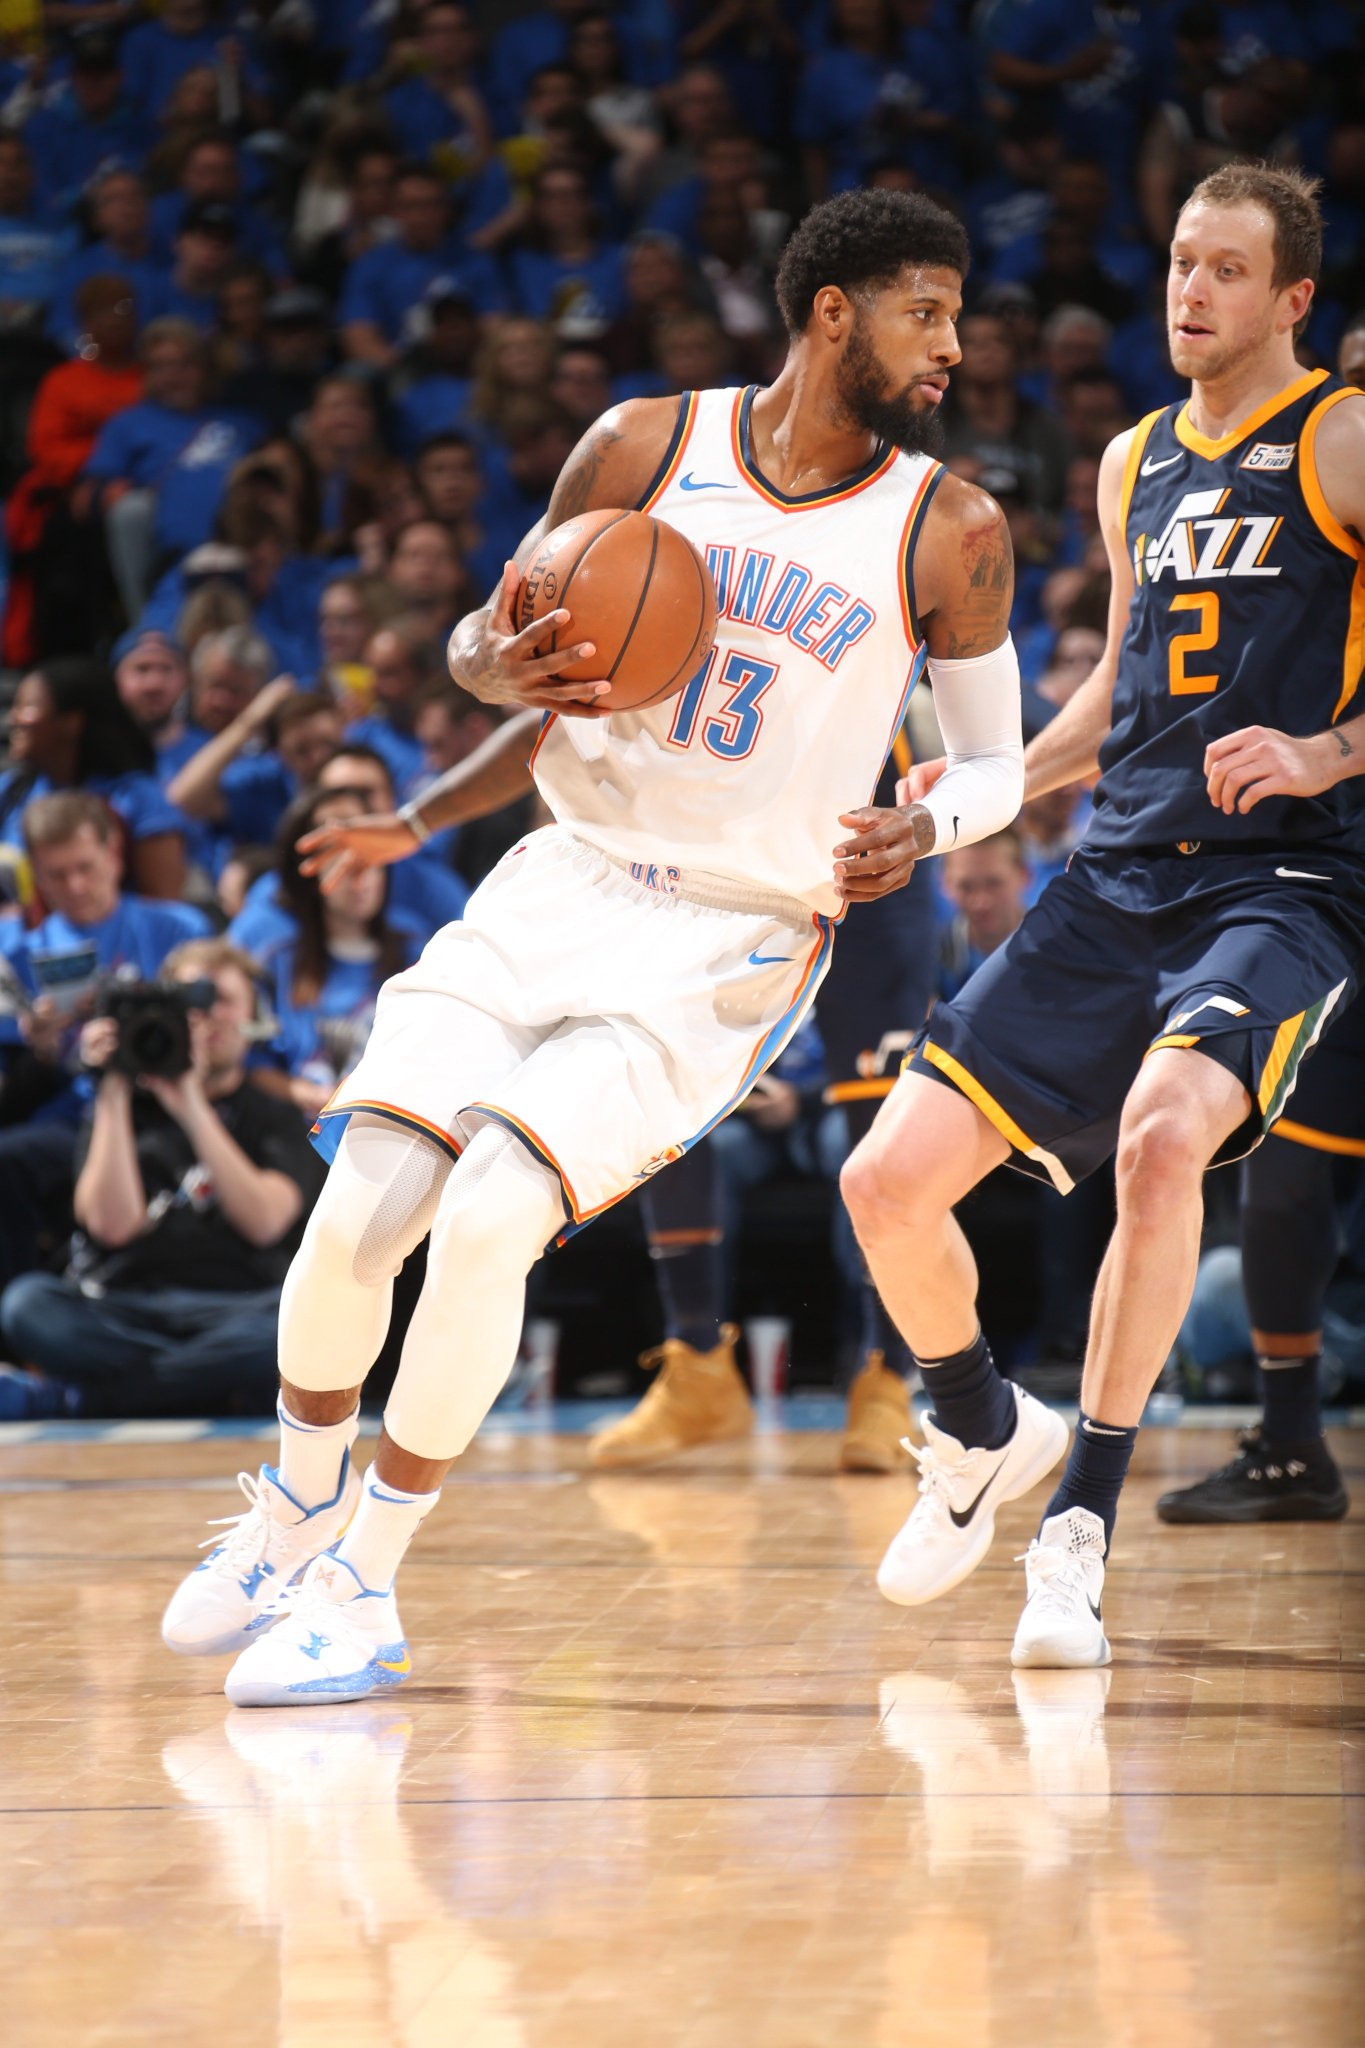 ������  36 PTS, 8-11 3PM midway through the 4th!  #ThunderUp #NBAPlayoffs https://t.co/iw1qPdgI9J